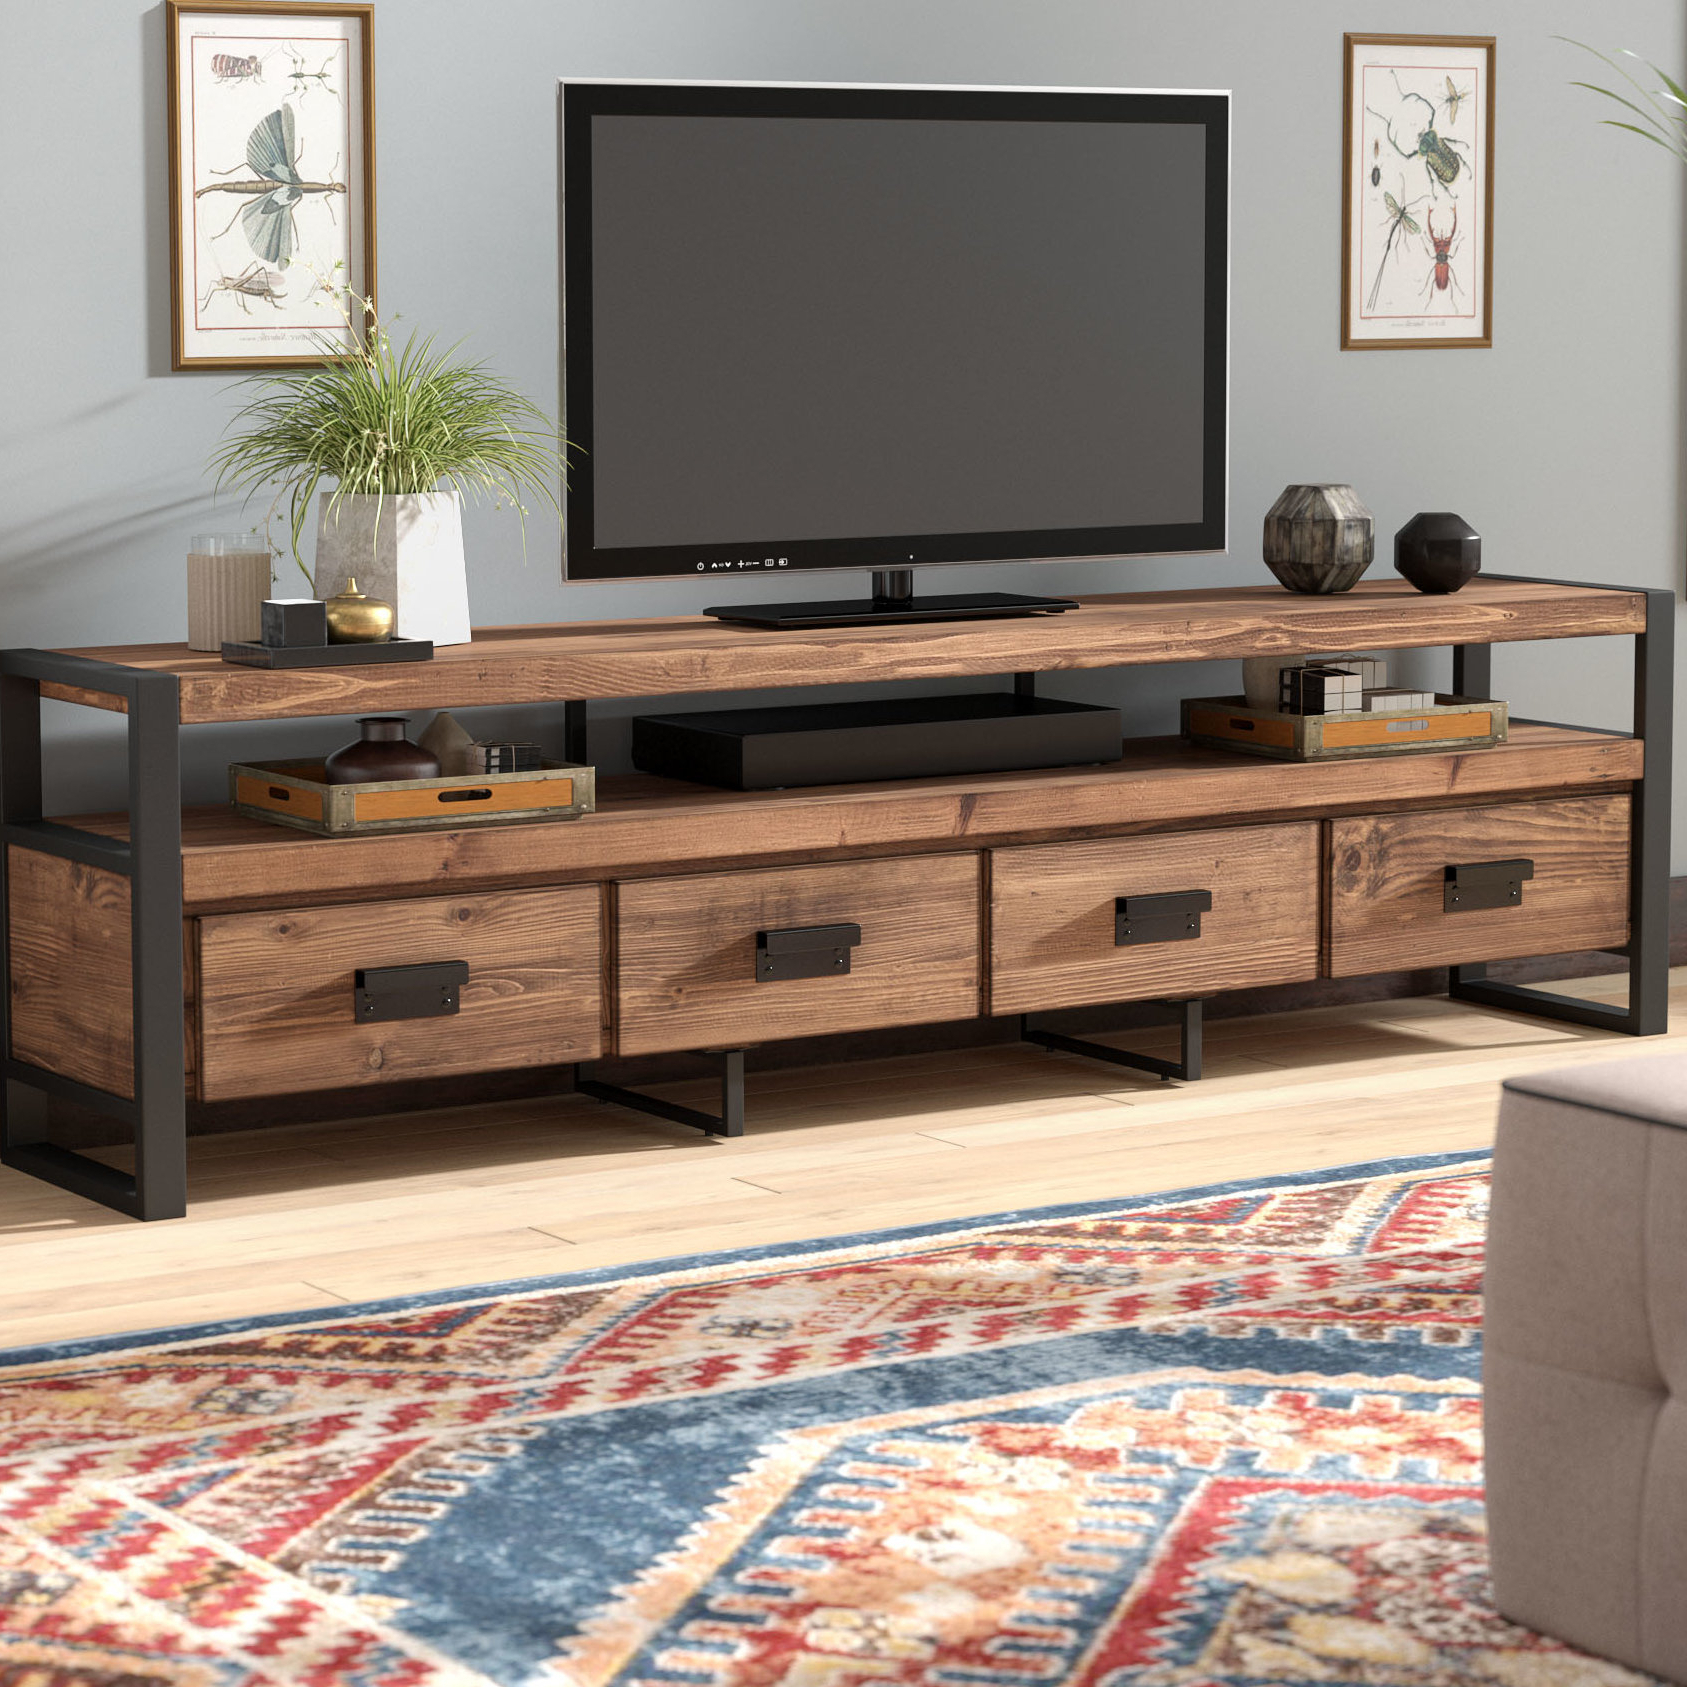 78 Inch Tv Stand | Www.miifotos Within Jacen 78 Inch Tv Stands (Gallery 16 of 20)